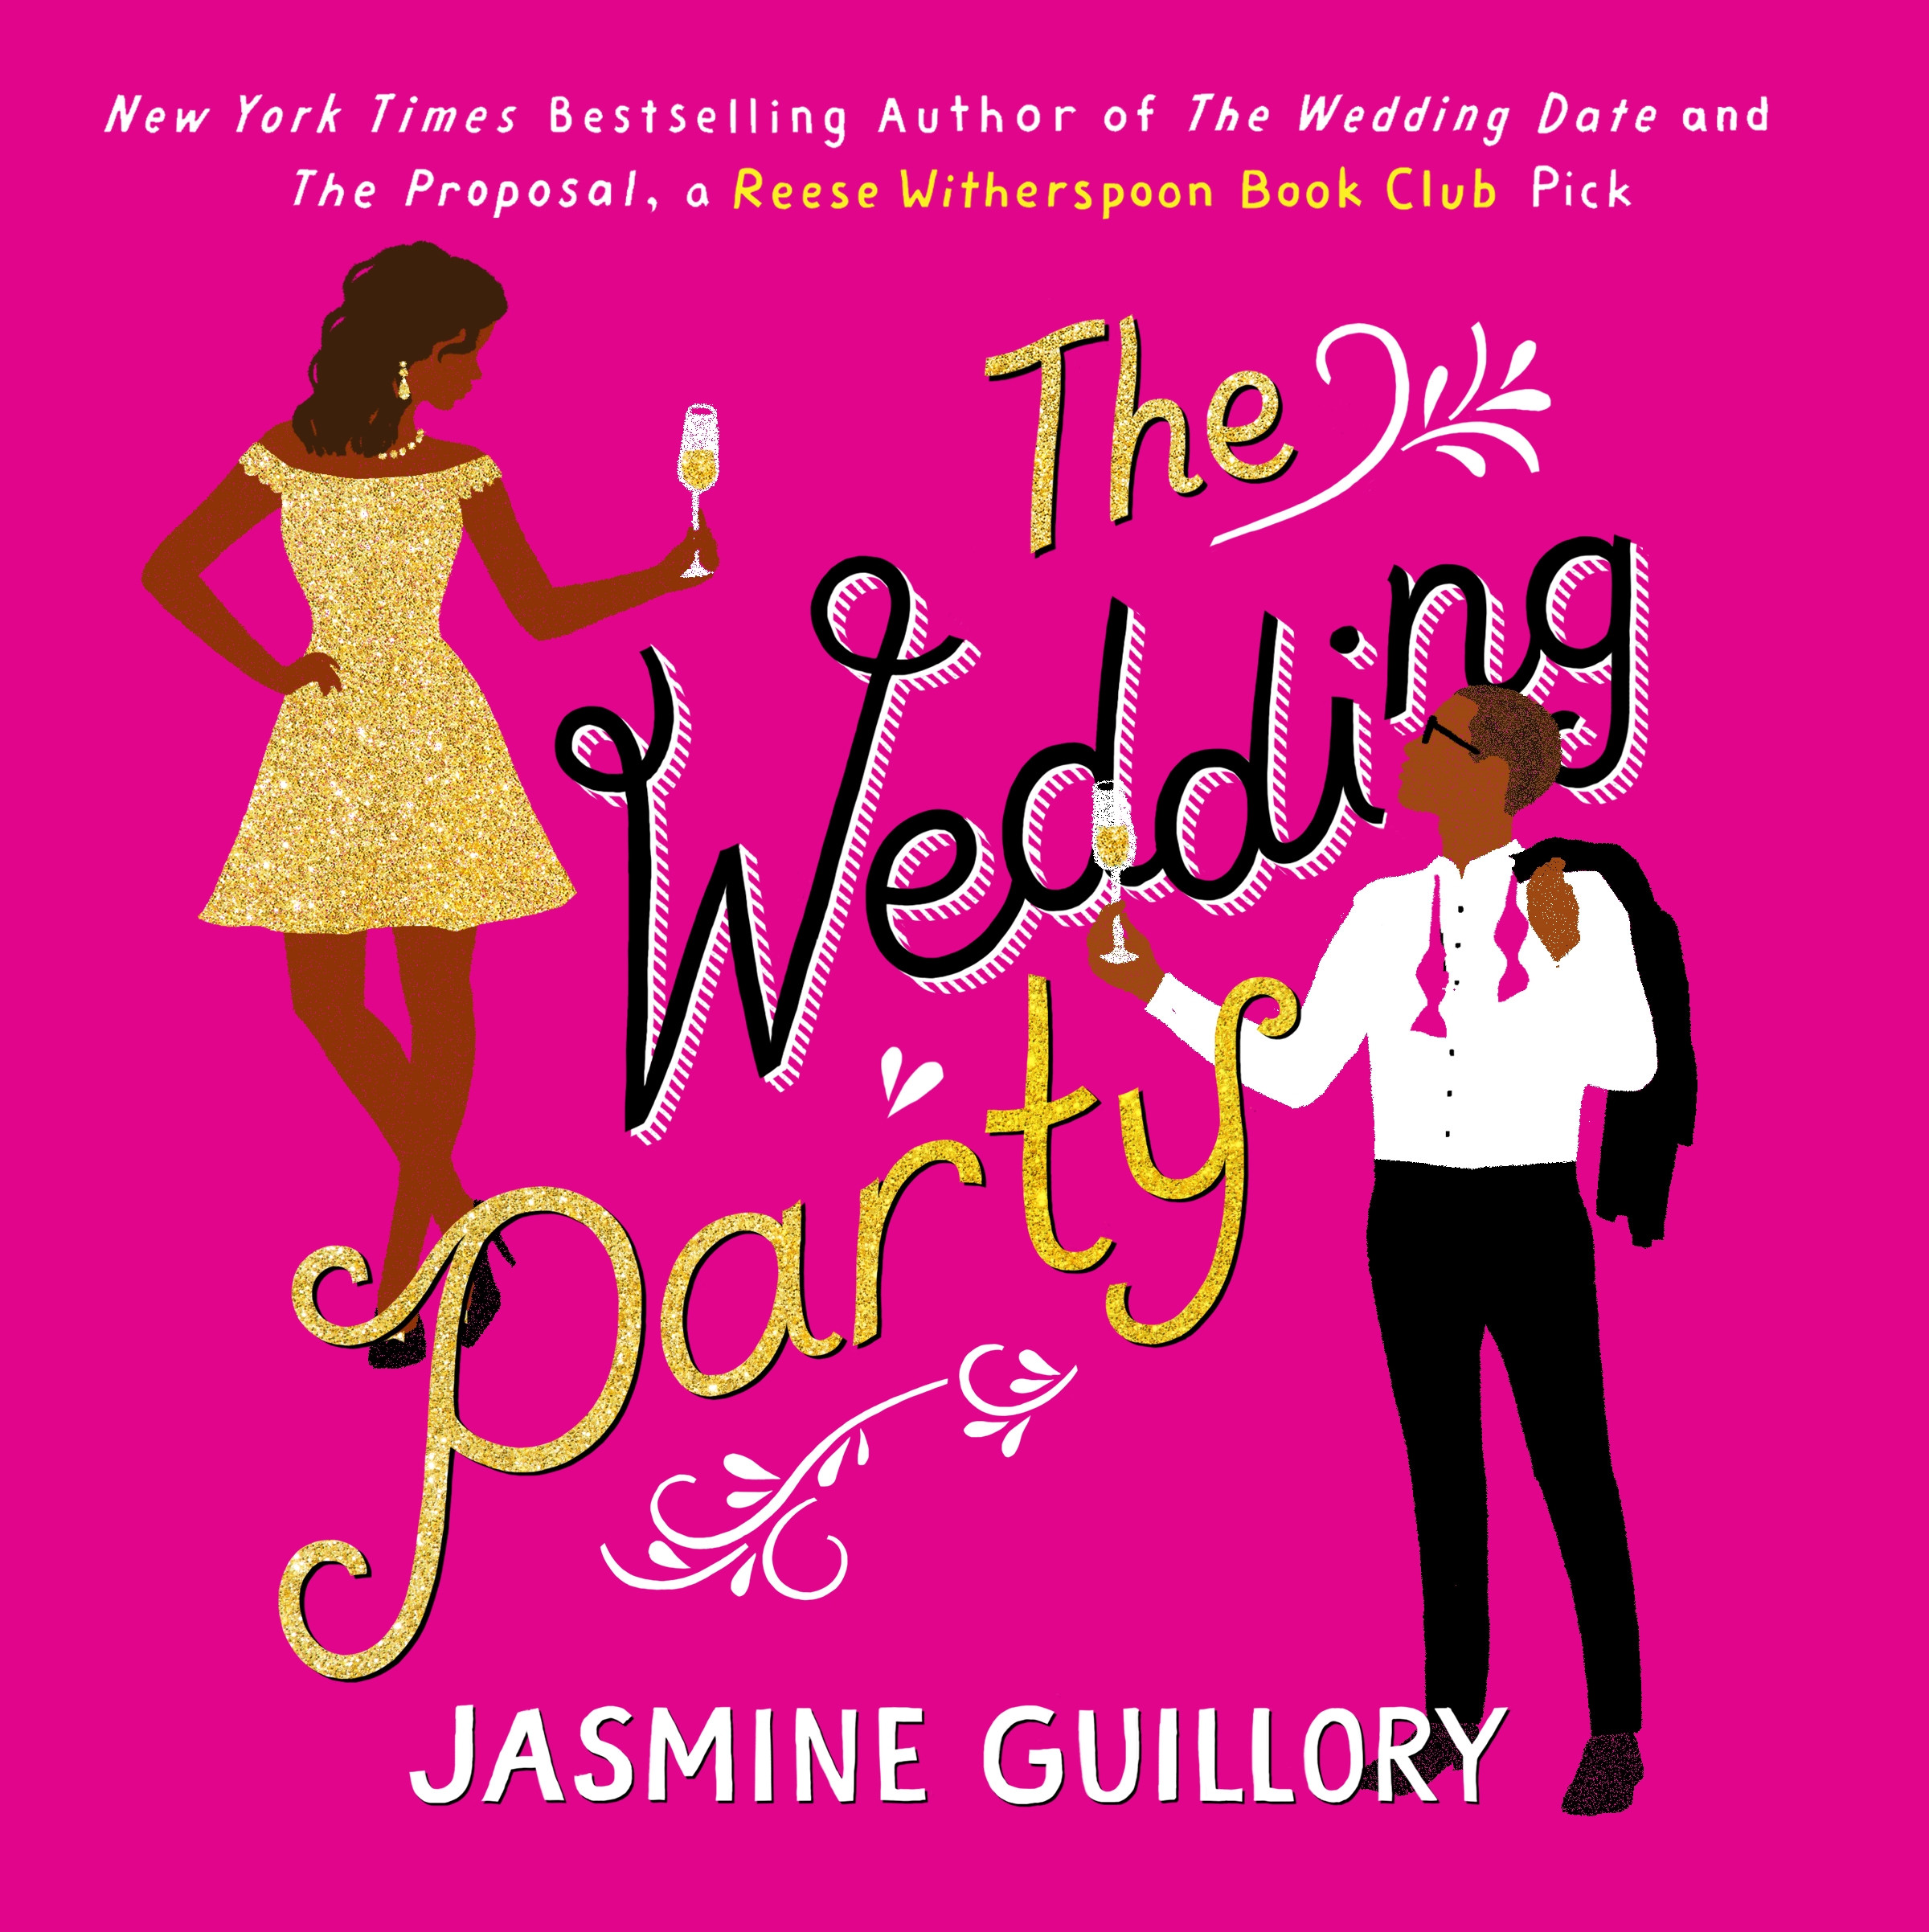 THE WEDDING PARTY BOOK COVER.jpg